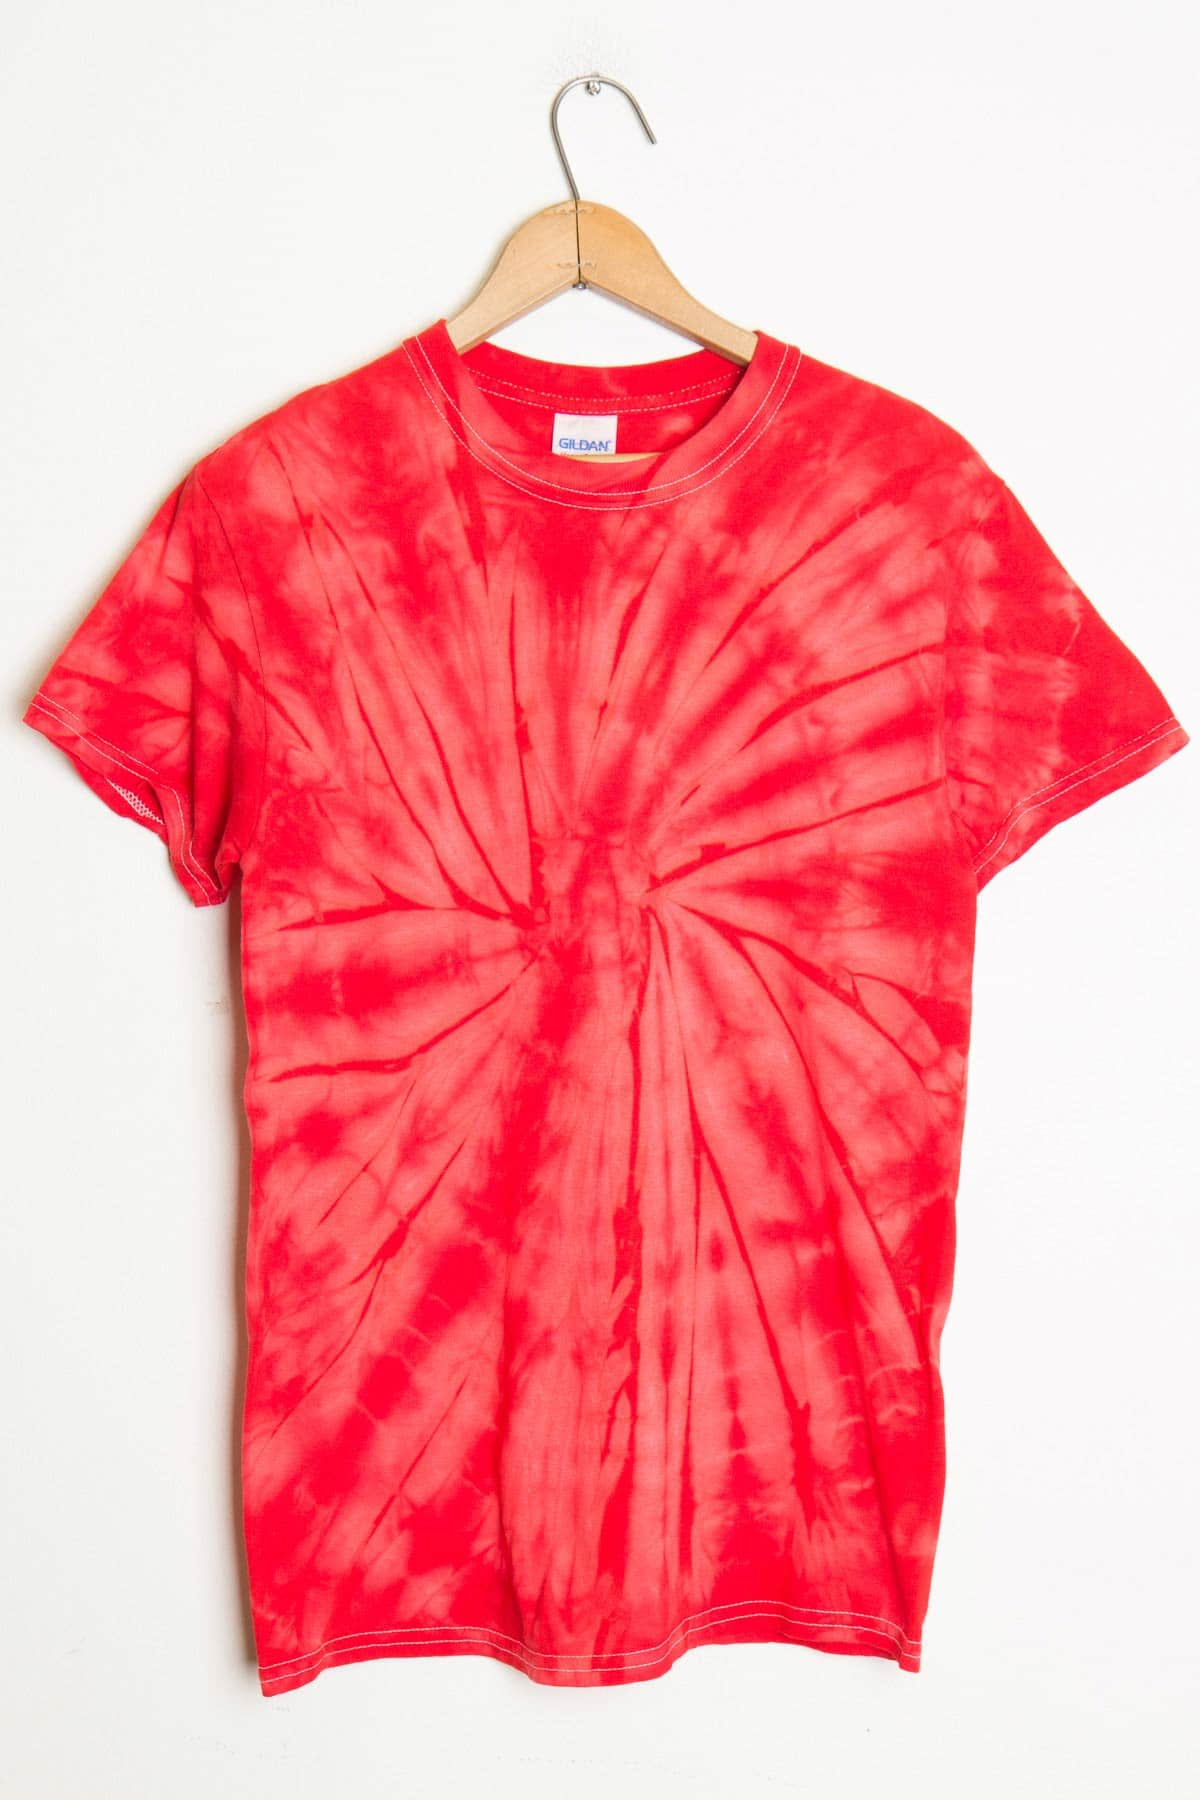 Pink and red shirt custom shirt for How do you dye a shirt